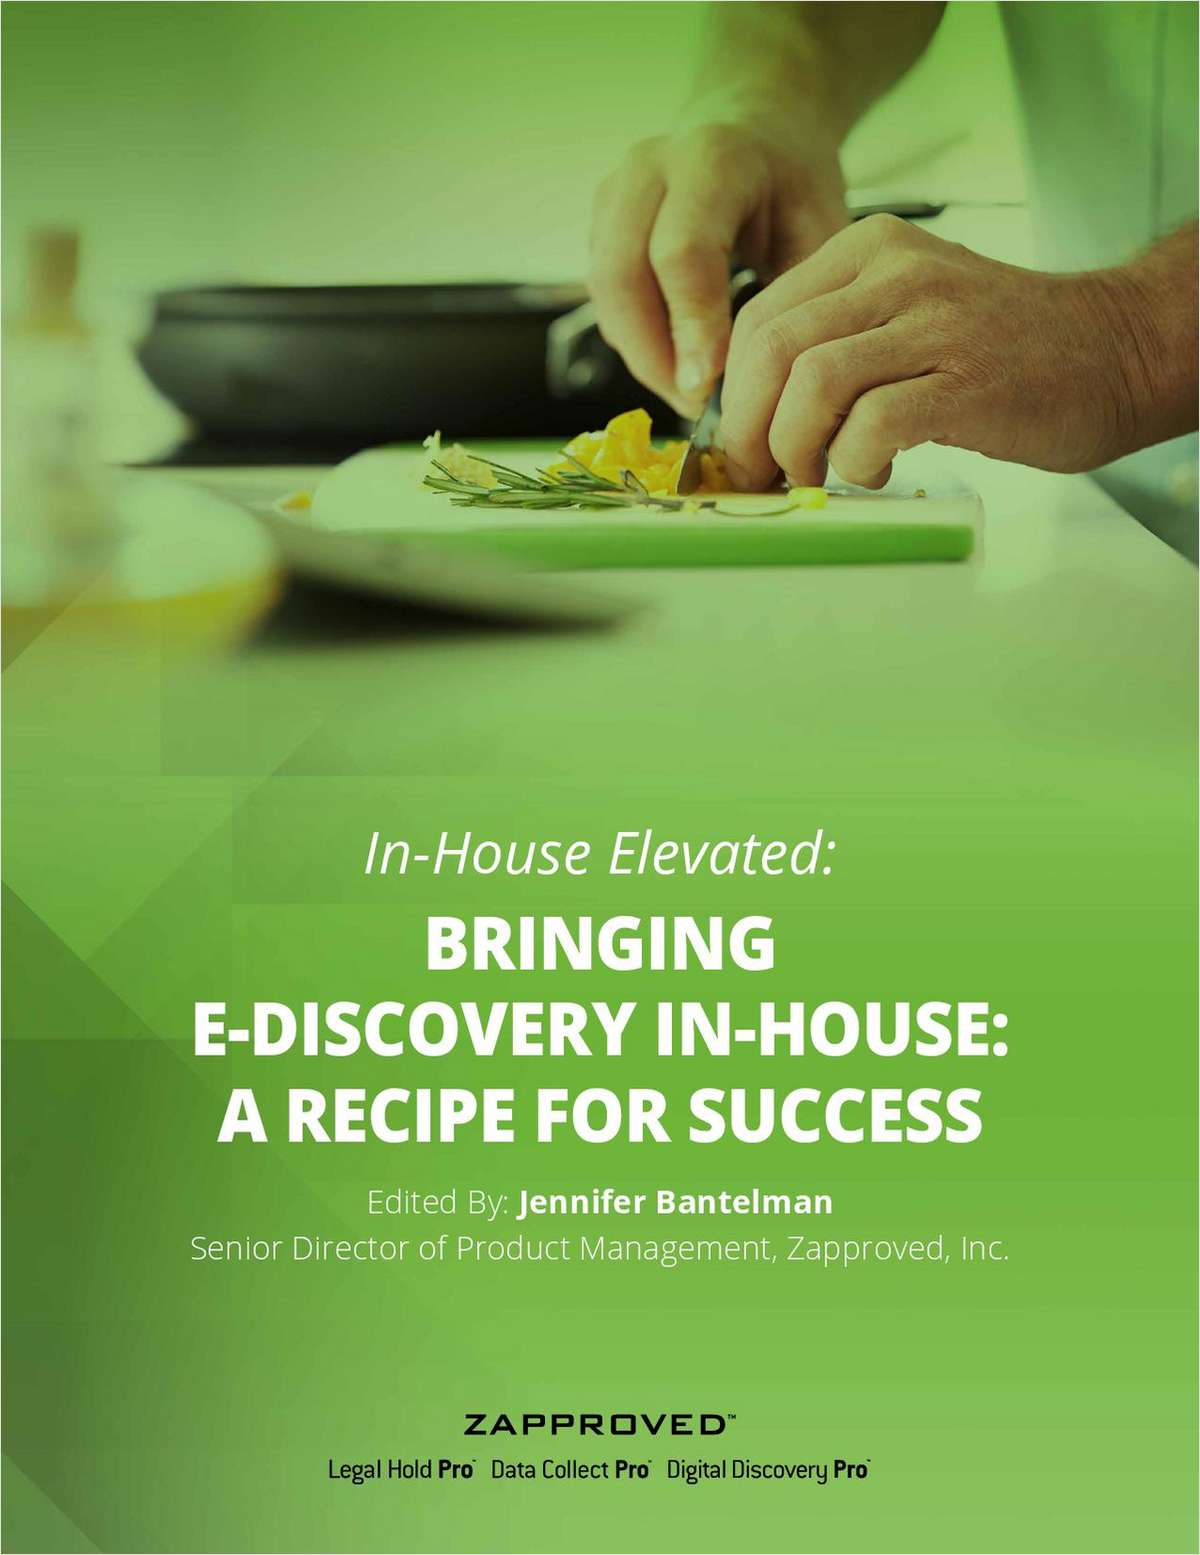 Bringing E-Discovery In House: A Recipe for Success